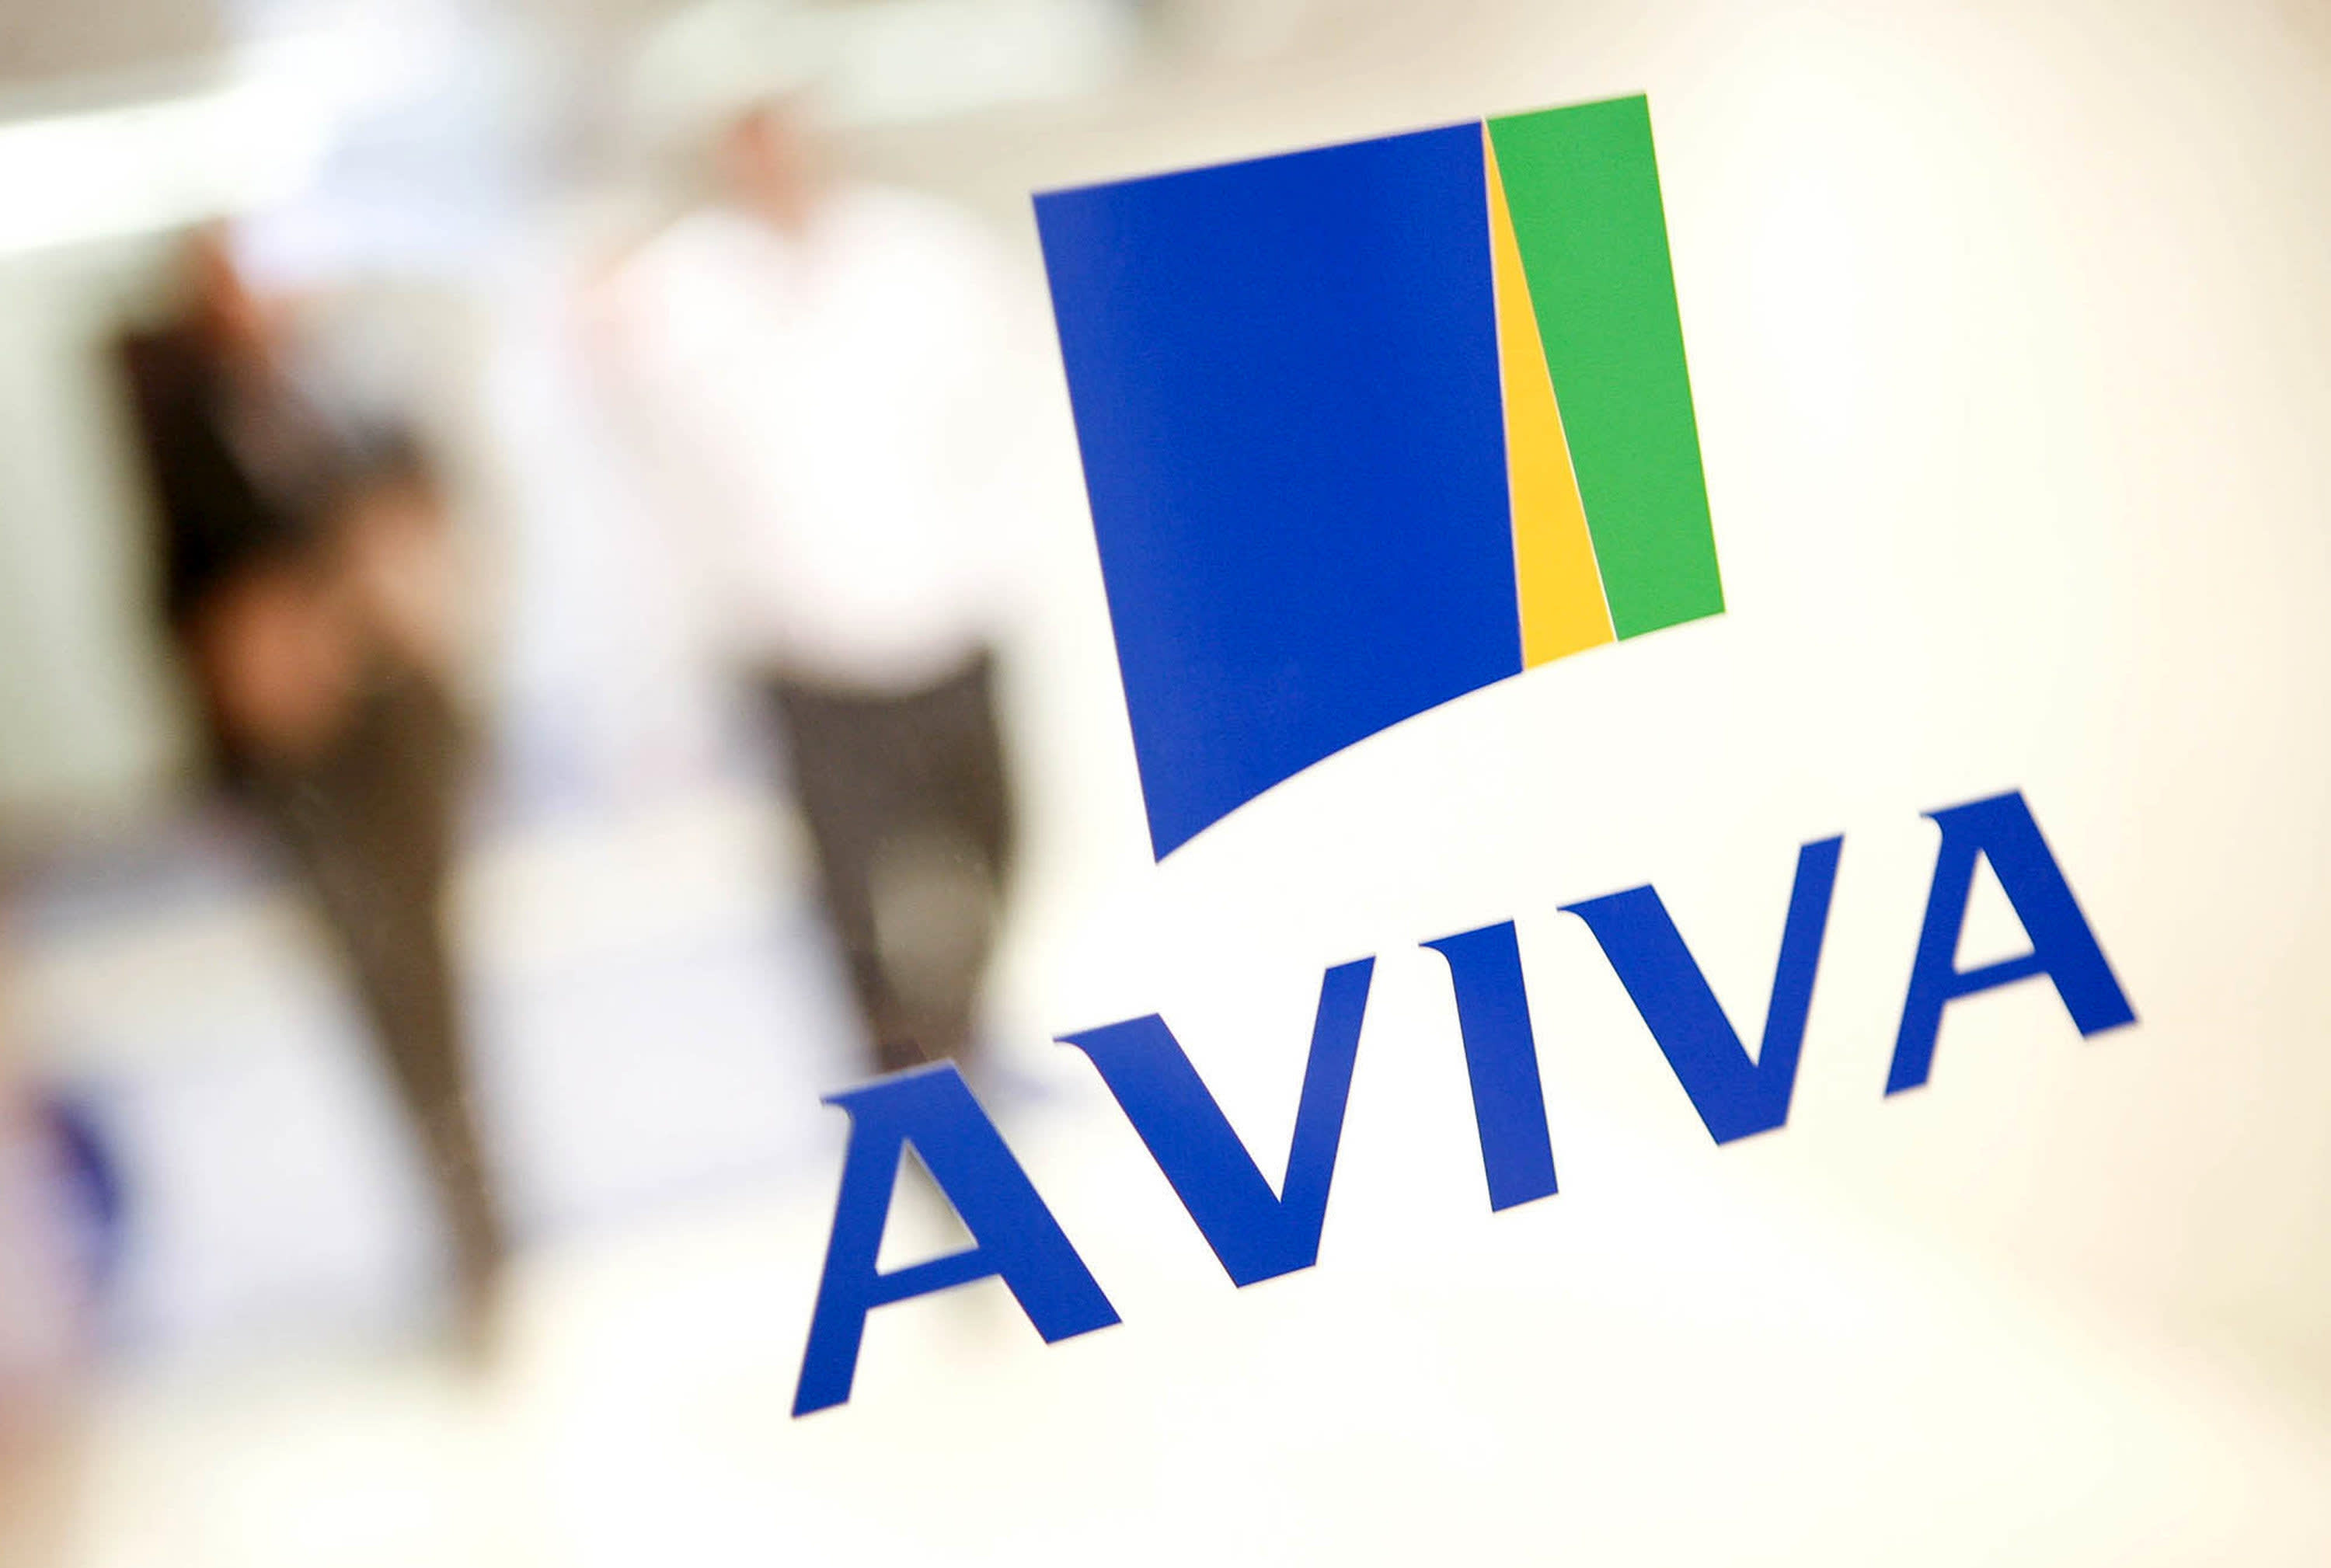 Aviva platform assets grow 16% despite issues